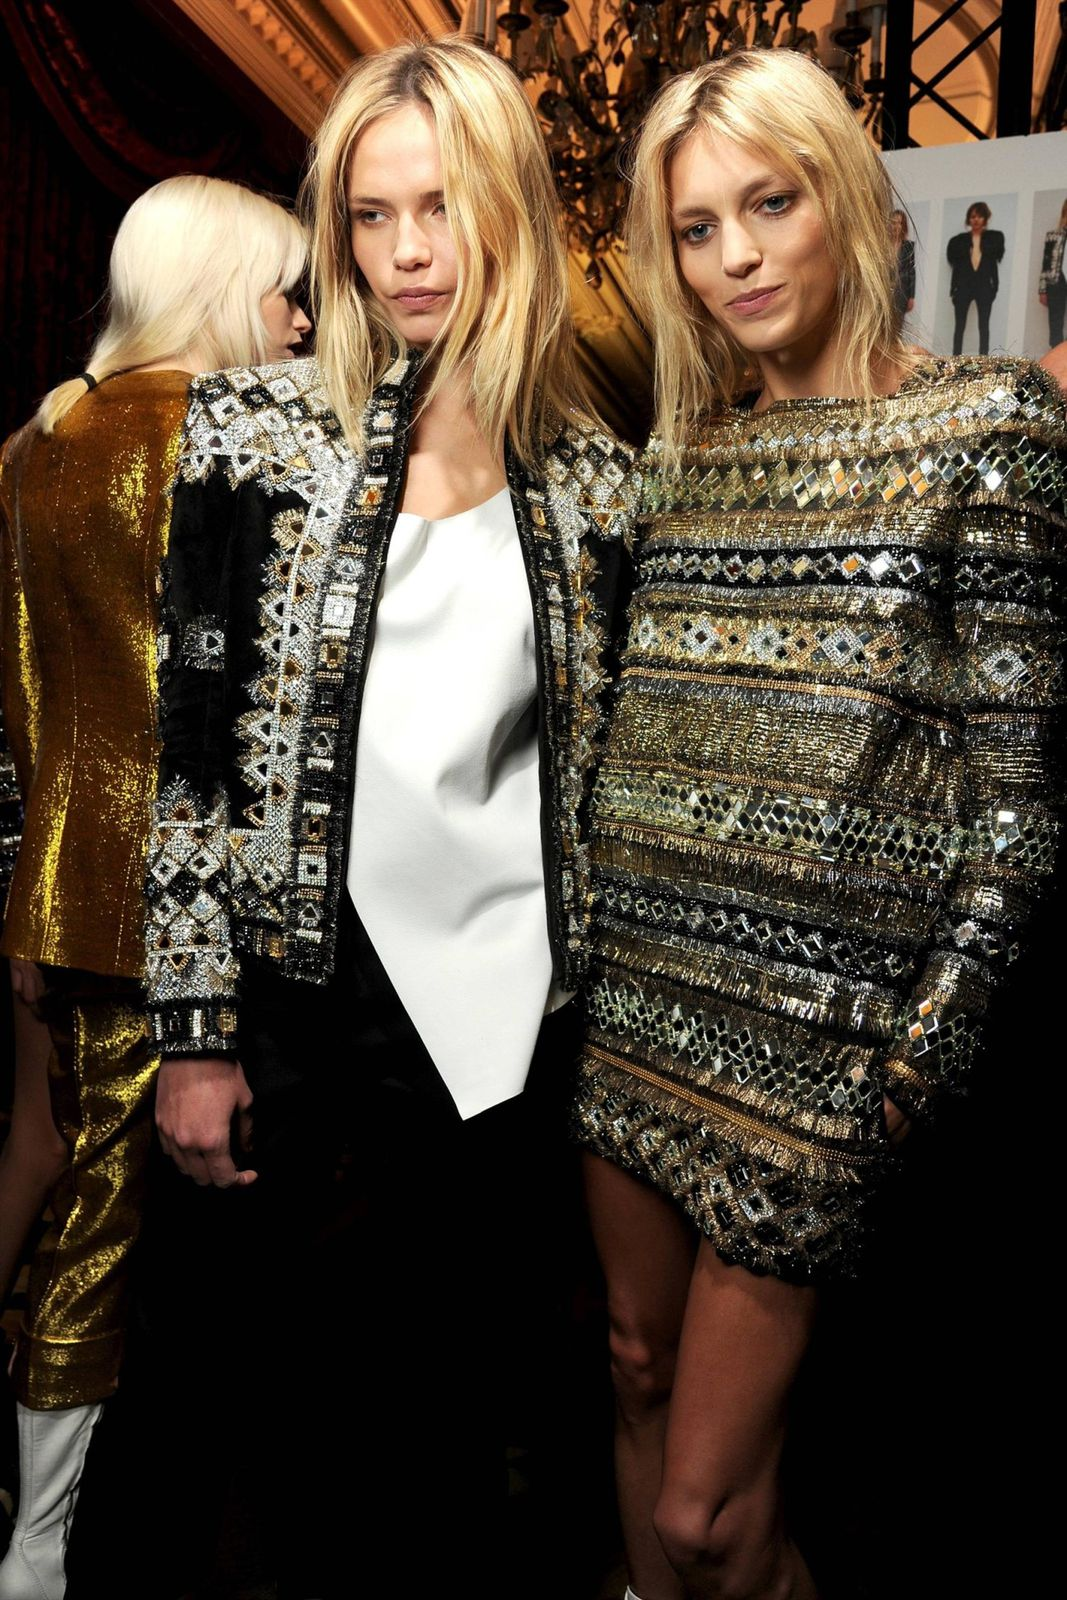 Fashion models, Natasha Poly, Anja Rubik, Paris Fashion Week, Balmain